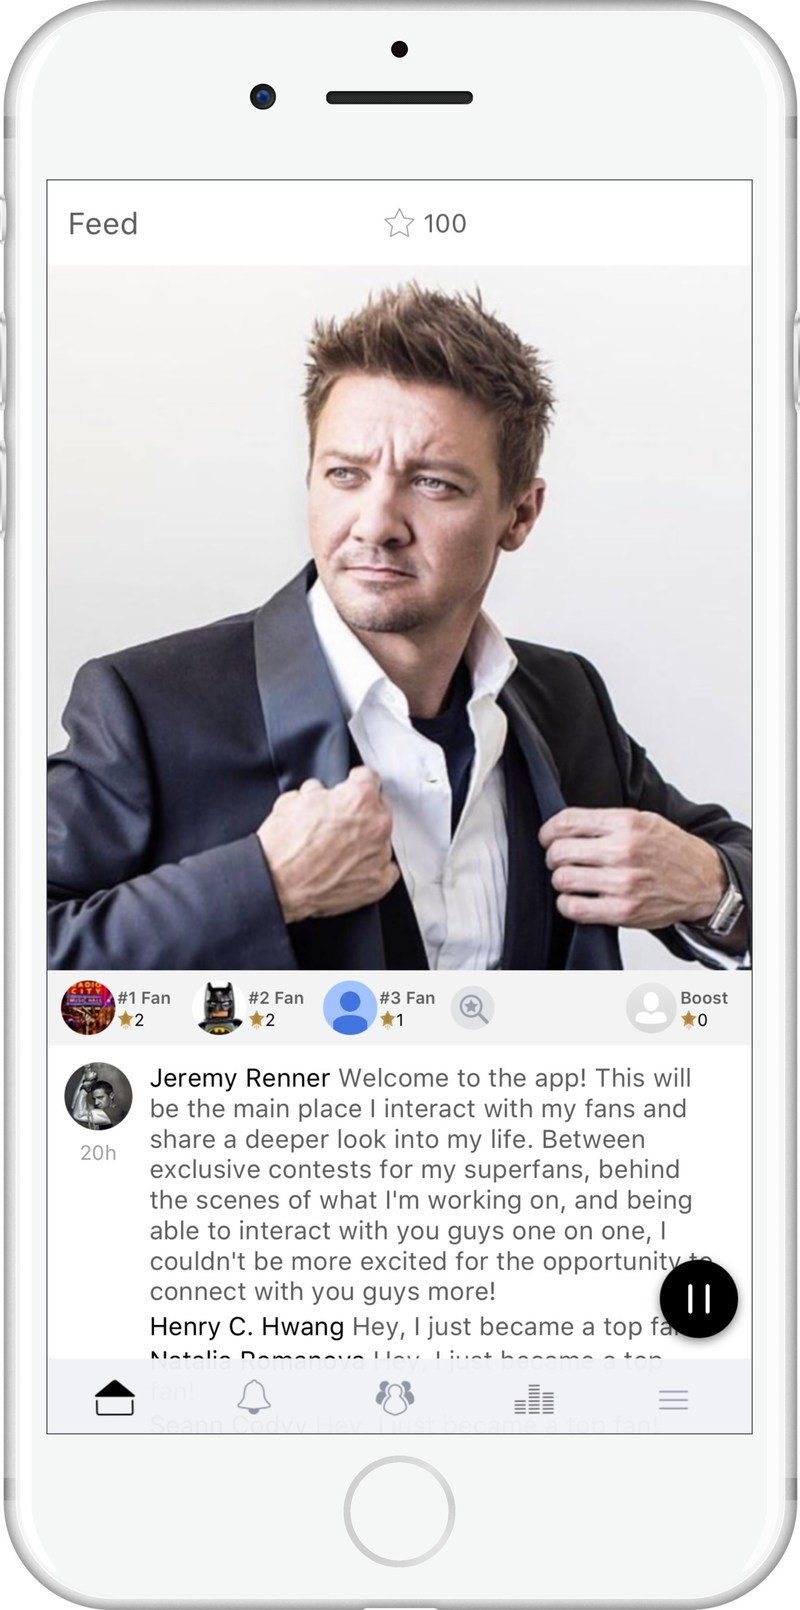 Actor and singer Jeremy Renner today launched a groundbreaking free mobile app powered by escapex that gives him the ability to interact directly with his fans all over the world.